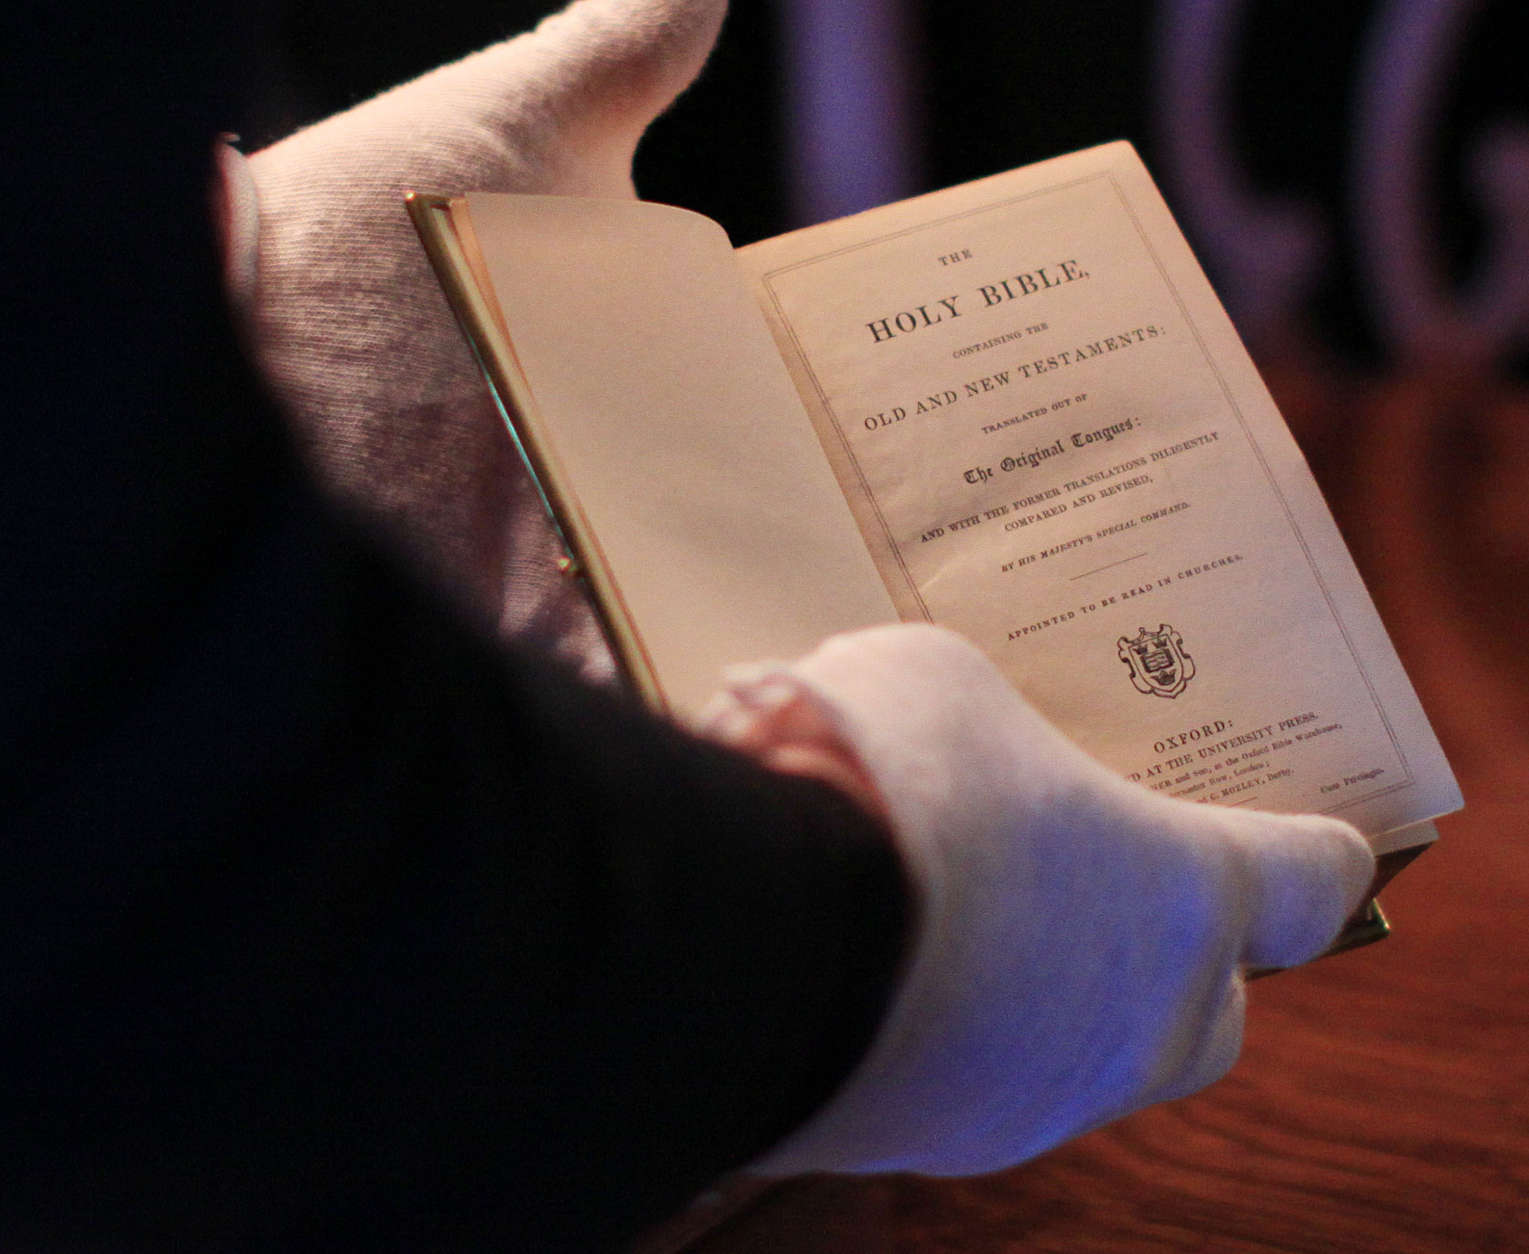 Curator Clark Evans displays the burgundy velvet, gilt-edged Lincoln Inaugural Bible at the Library of Congress Tuesday, Dec. 23, 2008, in Washington. President-elect Barack Obama will take his oath of office on the bible Jan. 20, becoming the first president to use it since Abraham Lincoln at his swearing-in on March 4, 1861. (AP Photo/Lauren Victoria Burke)